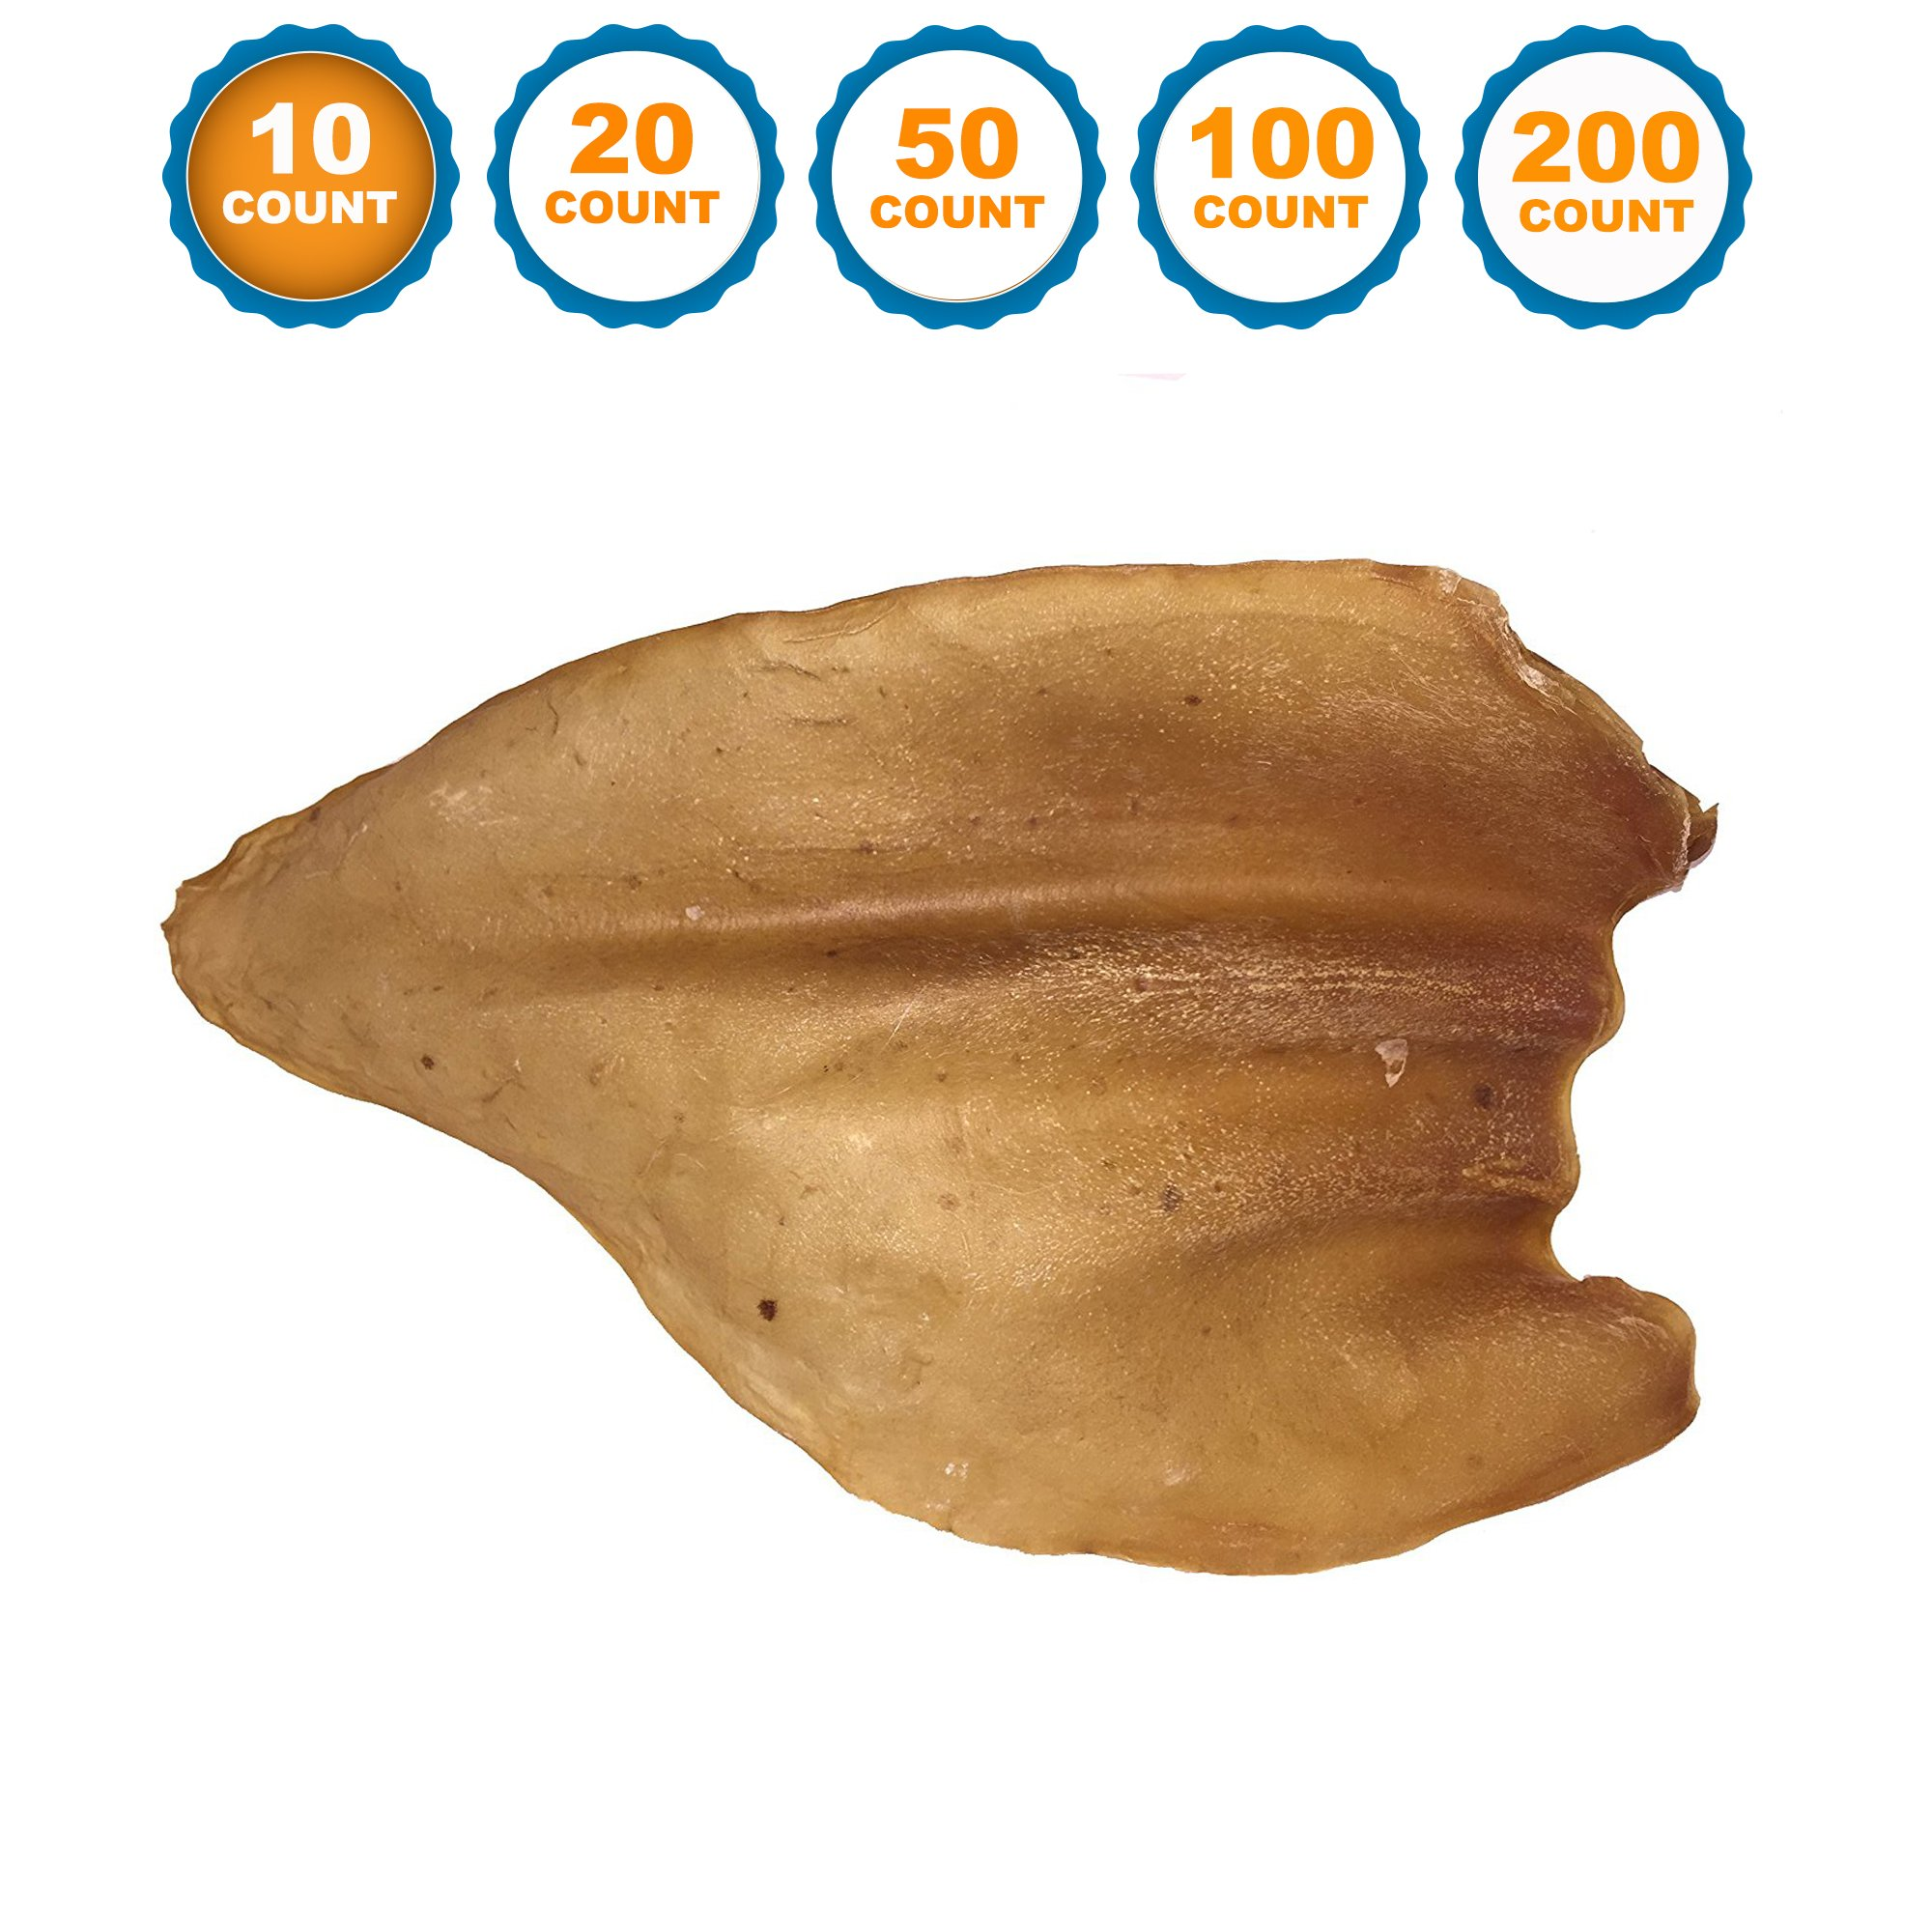 123 Treats - Dog Chews Cow Ears (10 Count) 100% Natural Animal Ears From Free Range Grass Fed Cattle No Hormones, Additives Chemicals